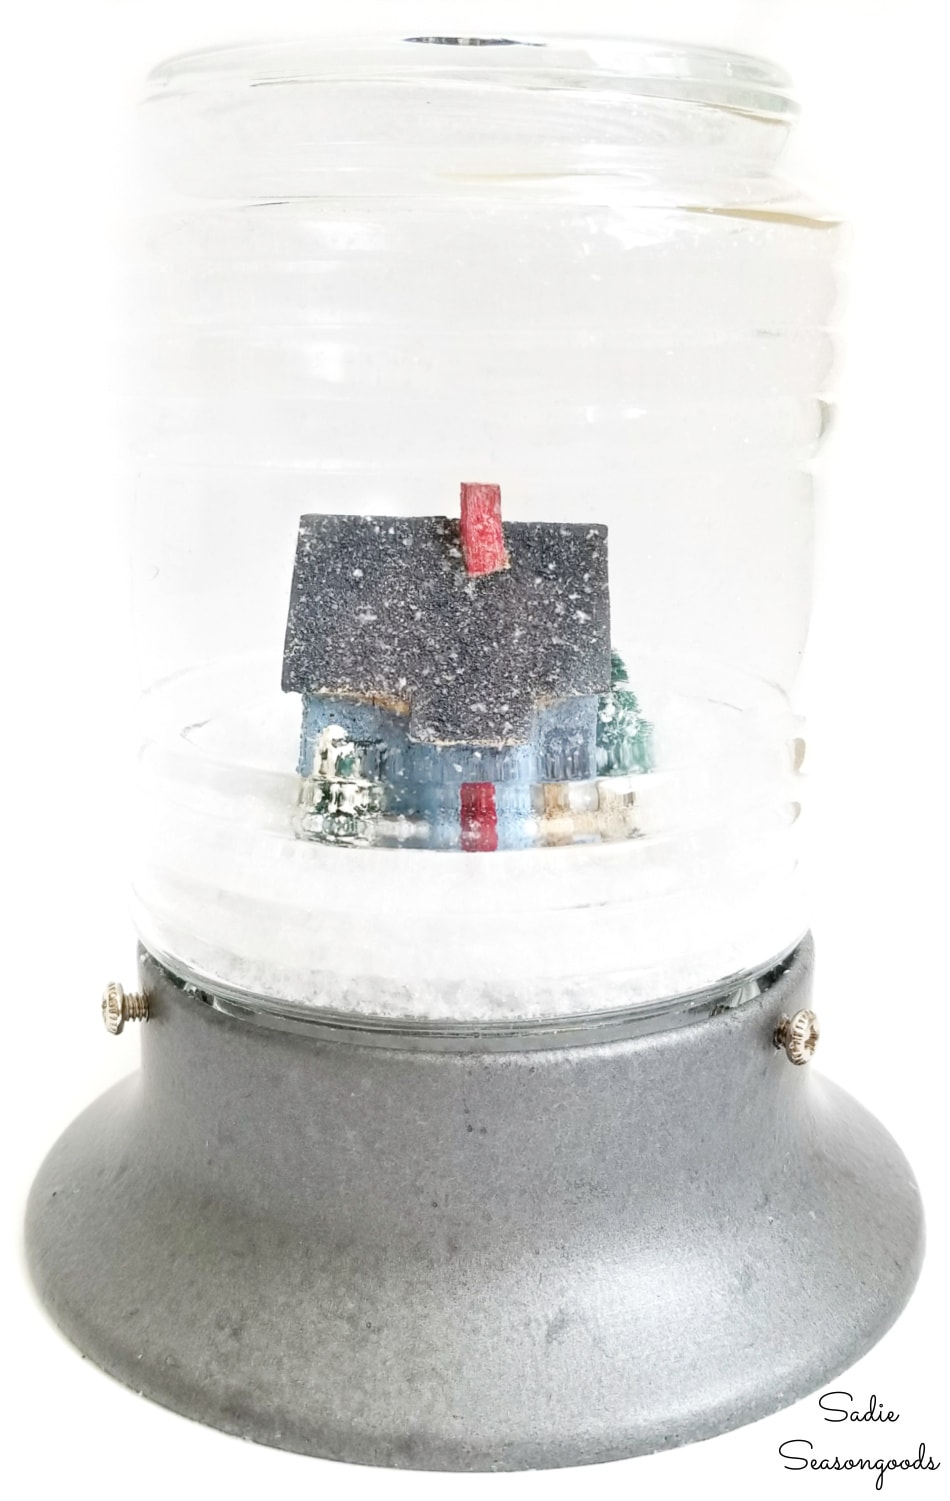 Winter snow globe with a vintage putz house